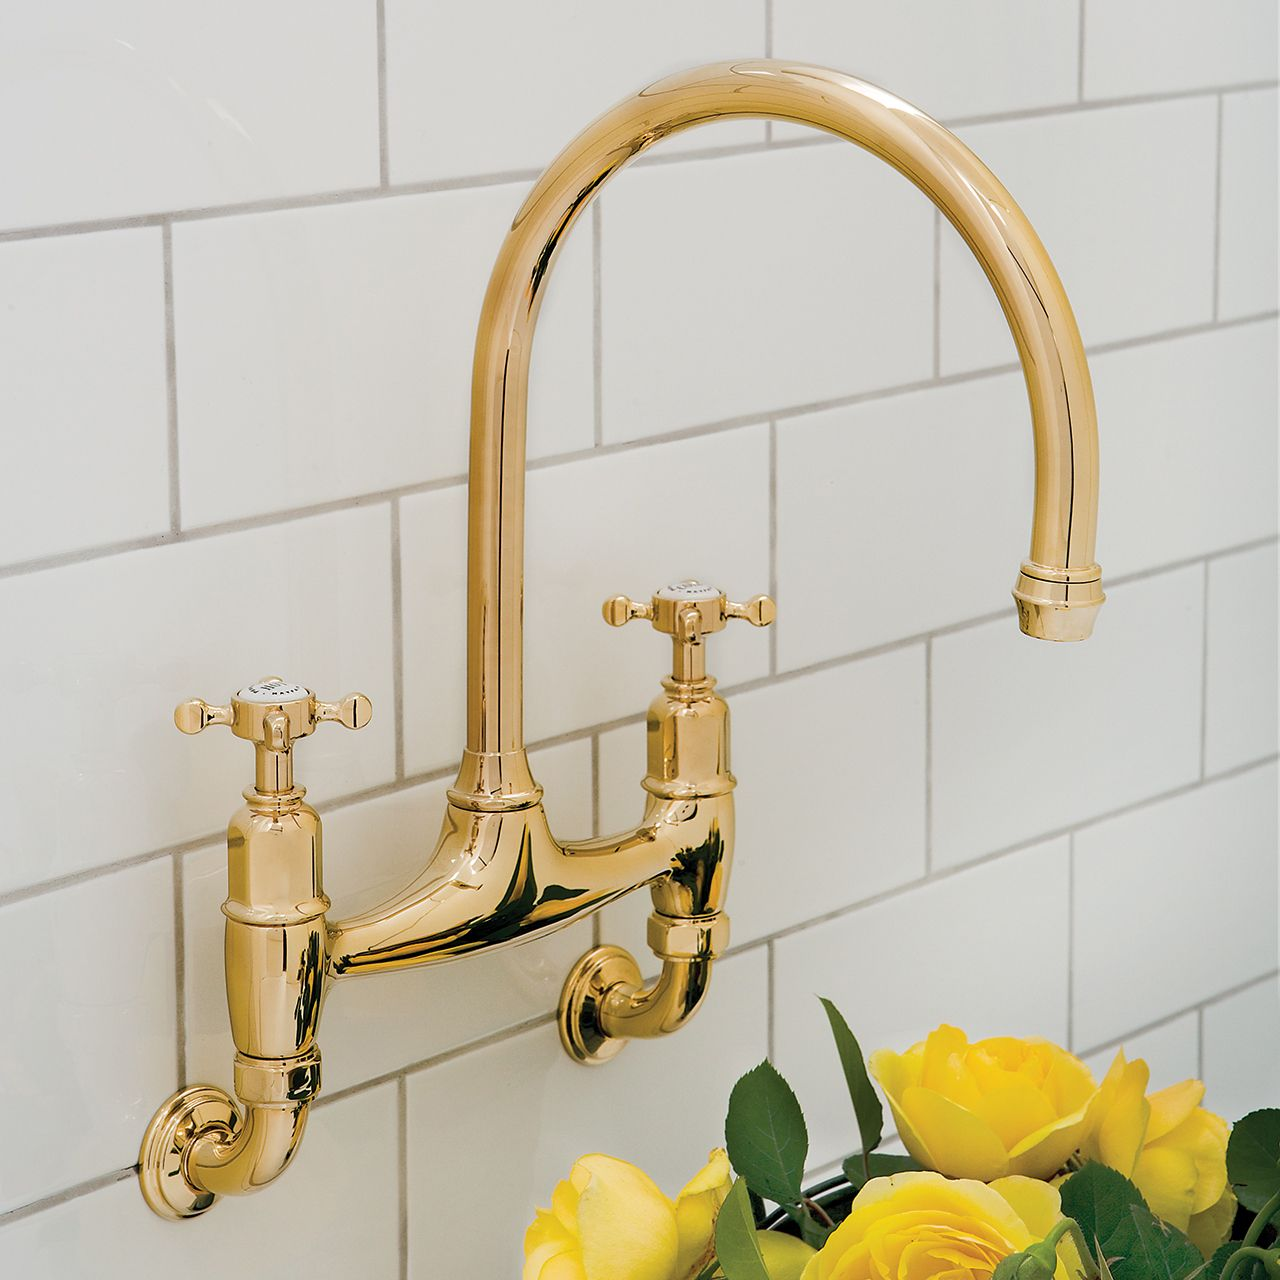 Perrin & Rowe IONIAN 4182 Wall Mounted Tap - Sinks-Taps.com